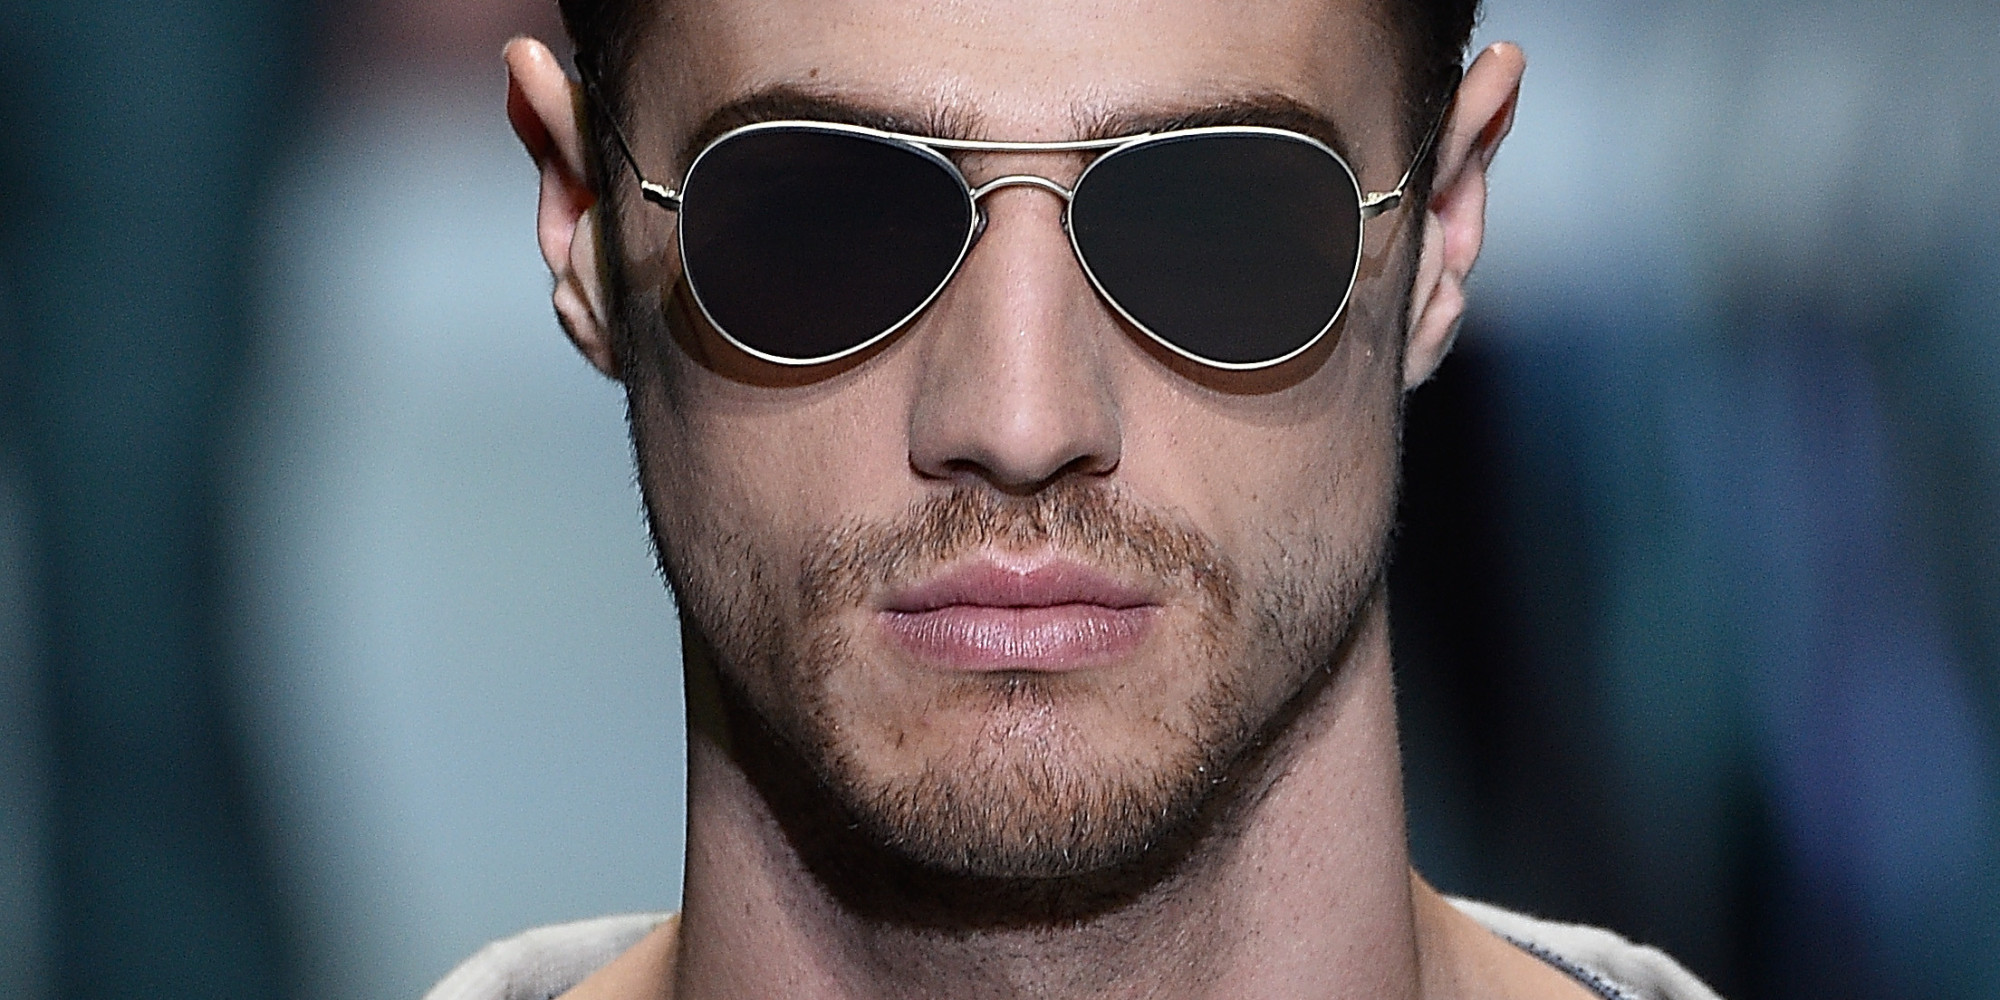 Sunglasses for men are typically best suited to sharp, square-shaped glasses. With sunglass lenses, where they need to cover more of your eyes, it's tricky to find the right frame. You need protection while retaining a masculine appearance/5(65).